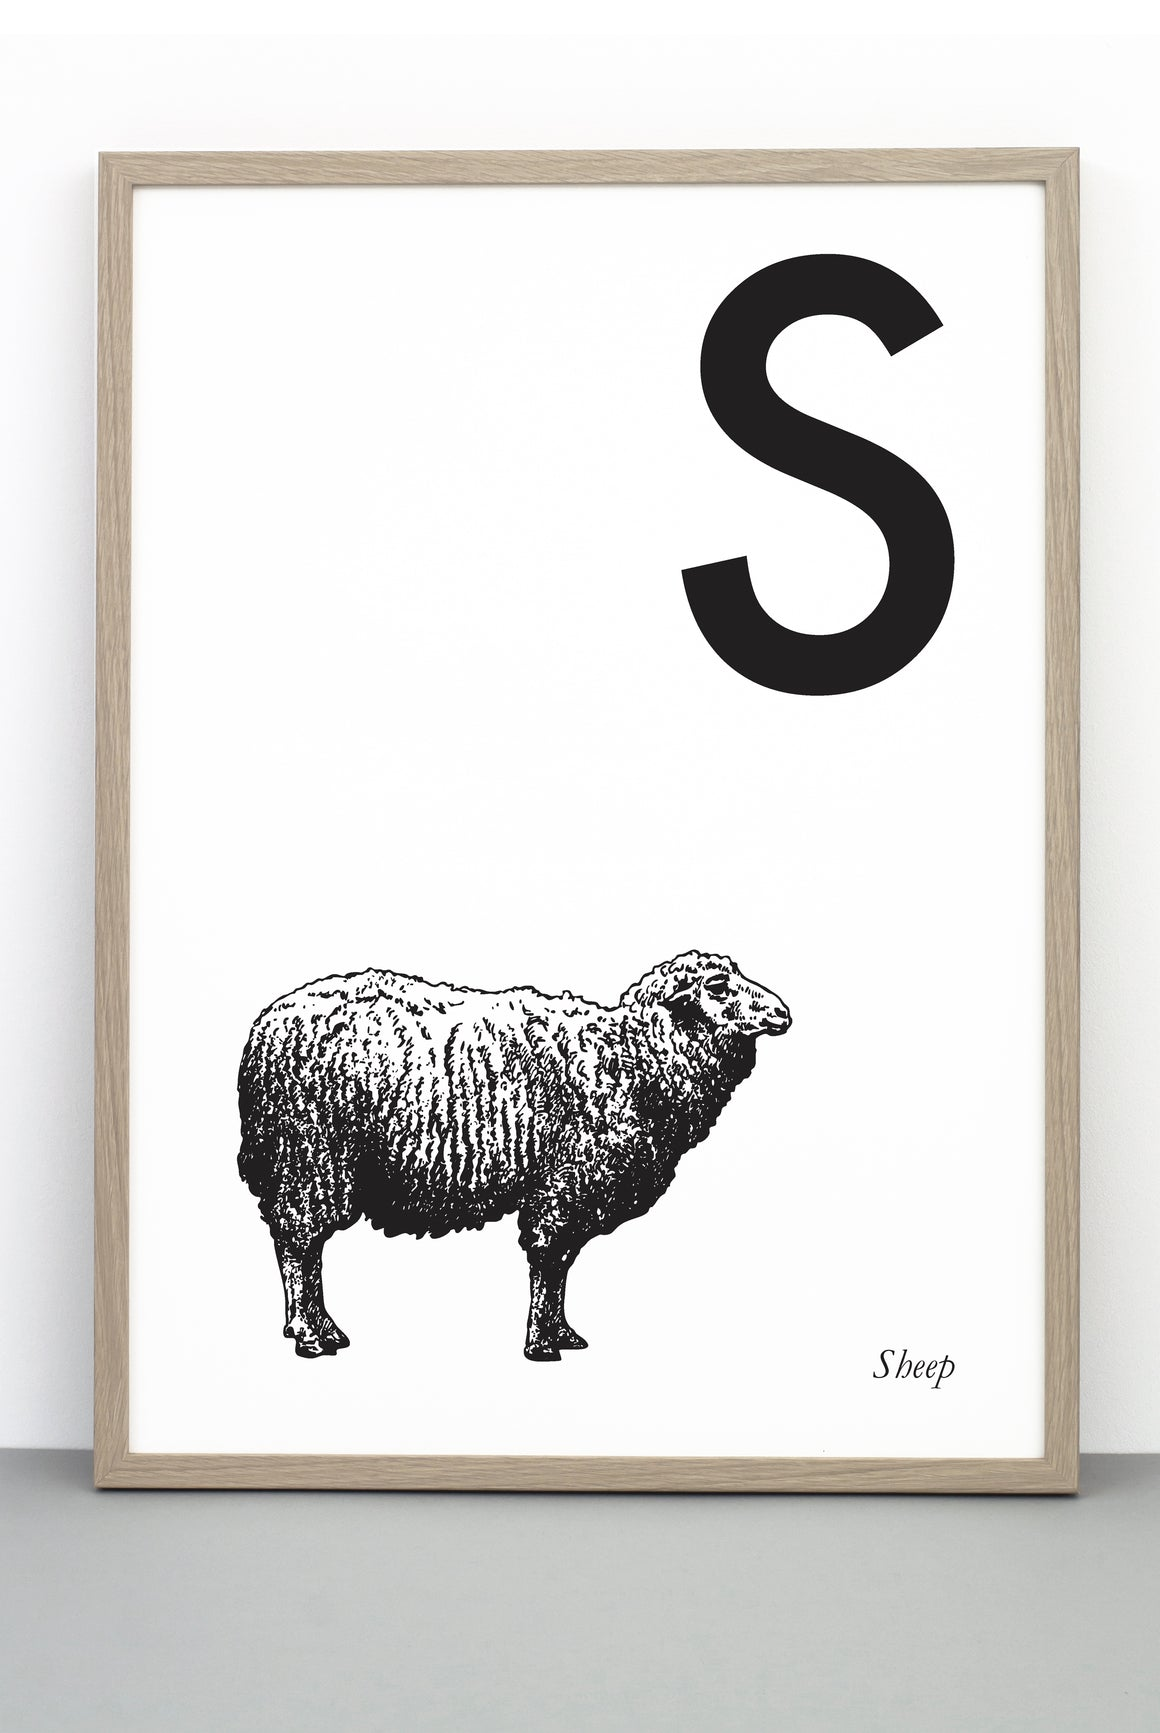 ANIMAL LETTER S, SHEEP, S DOWNLOADABLE PRINT